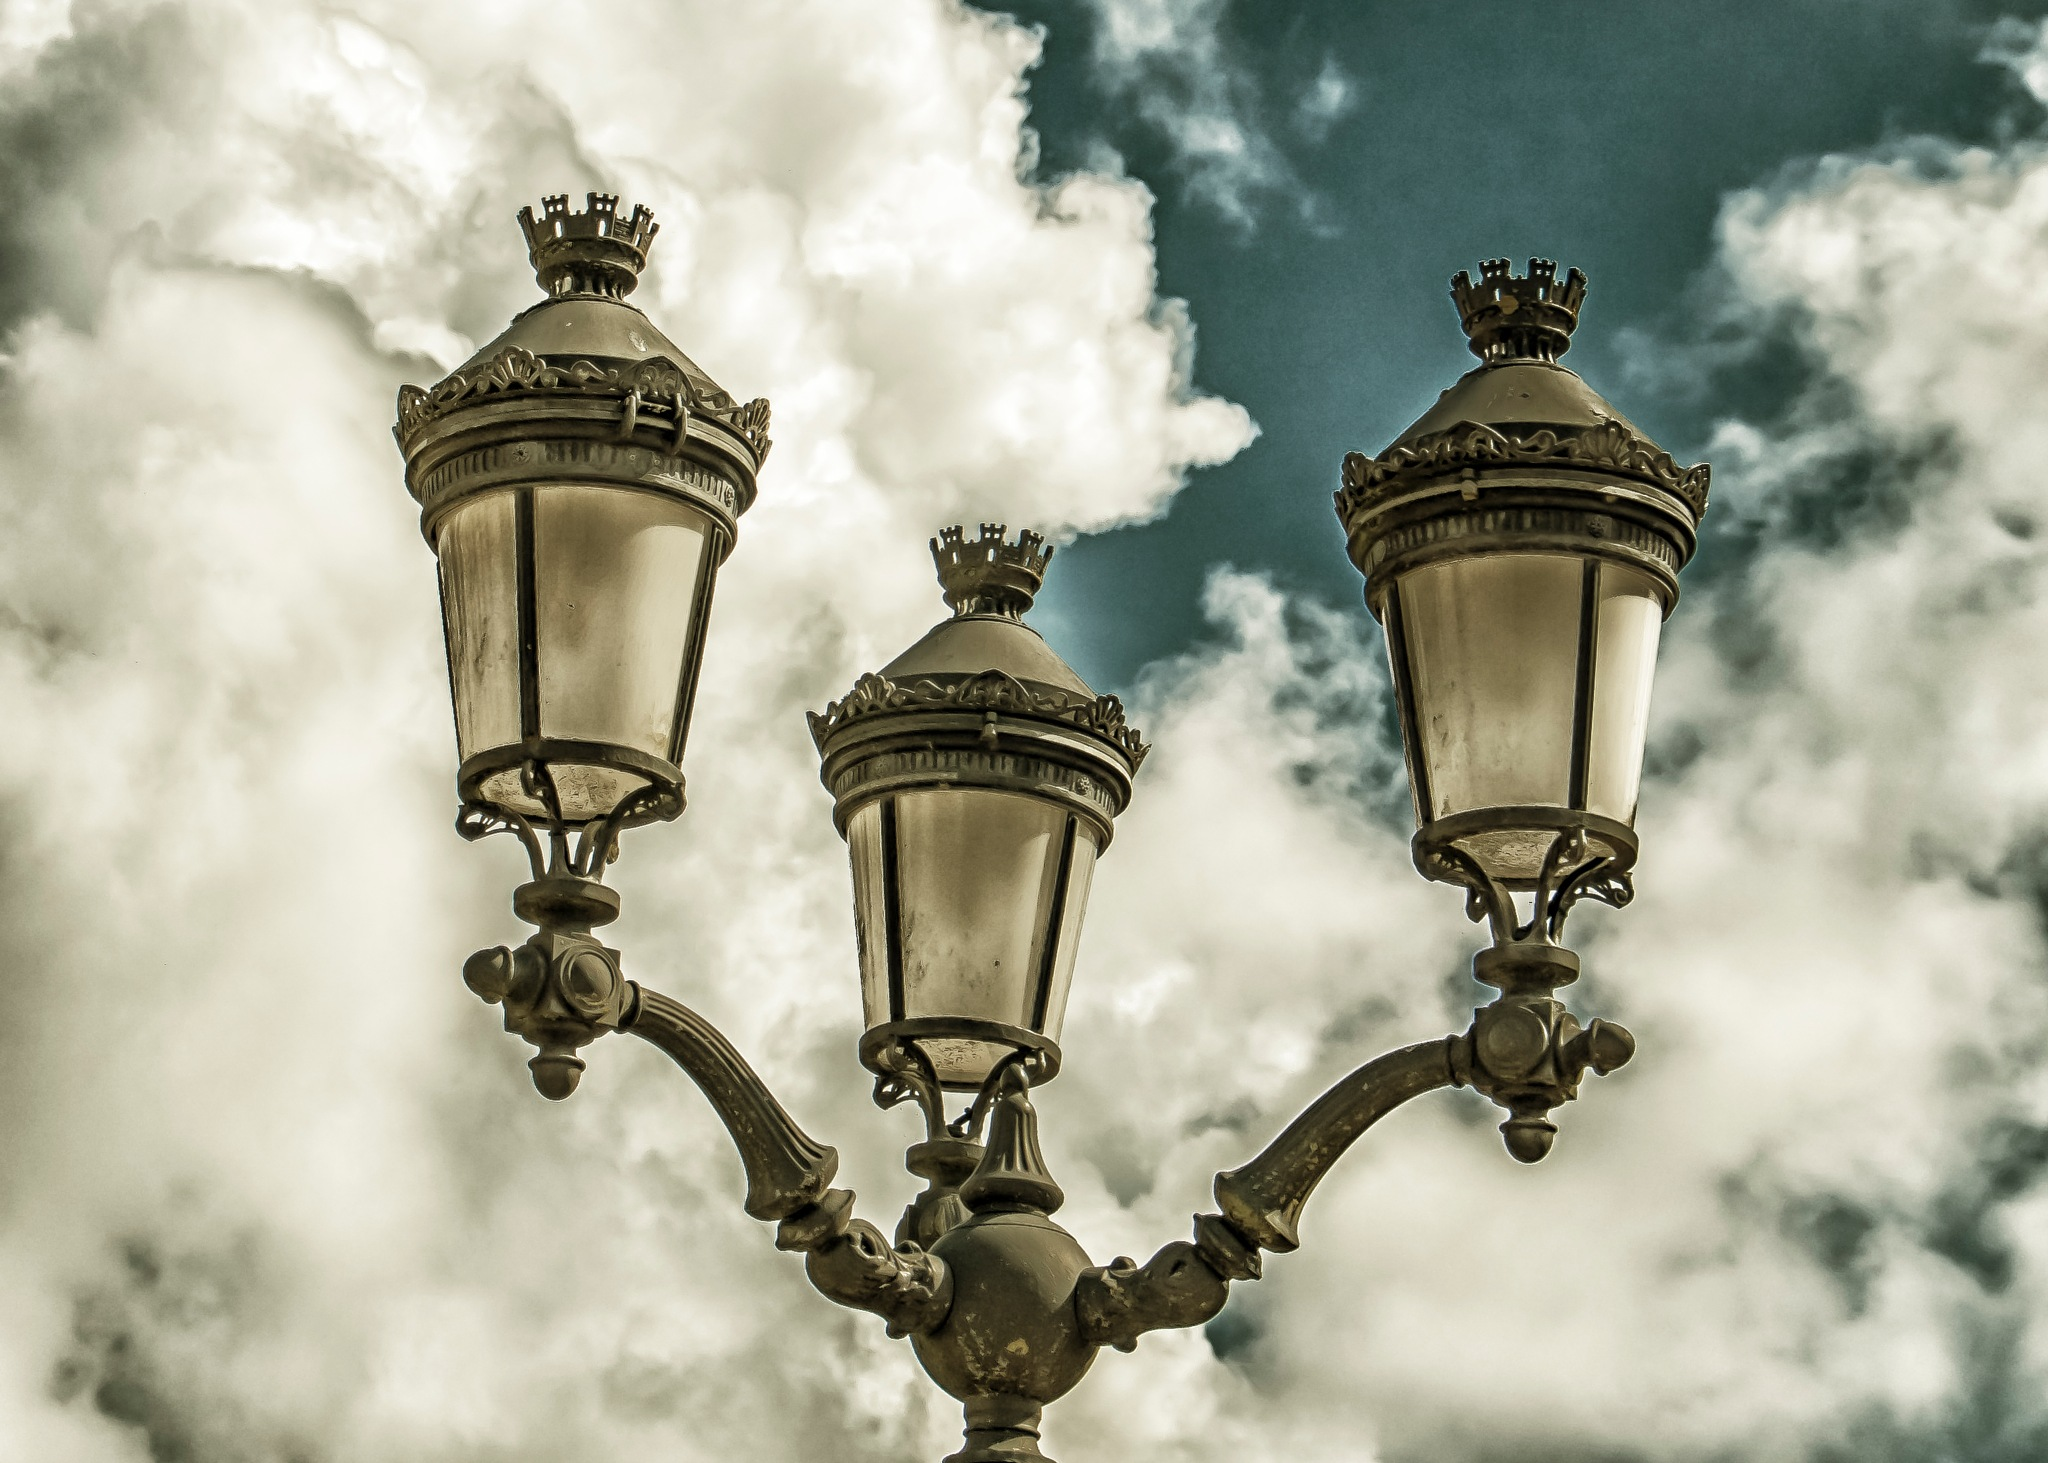 Lamp post by djaffar adane